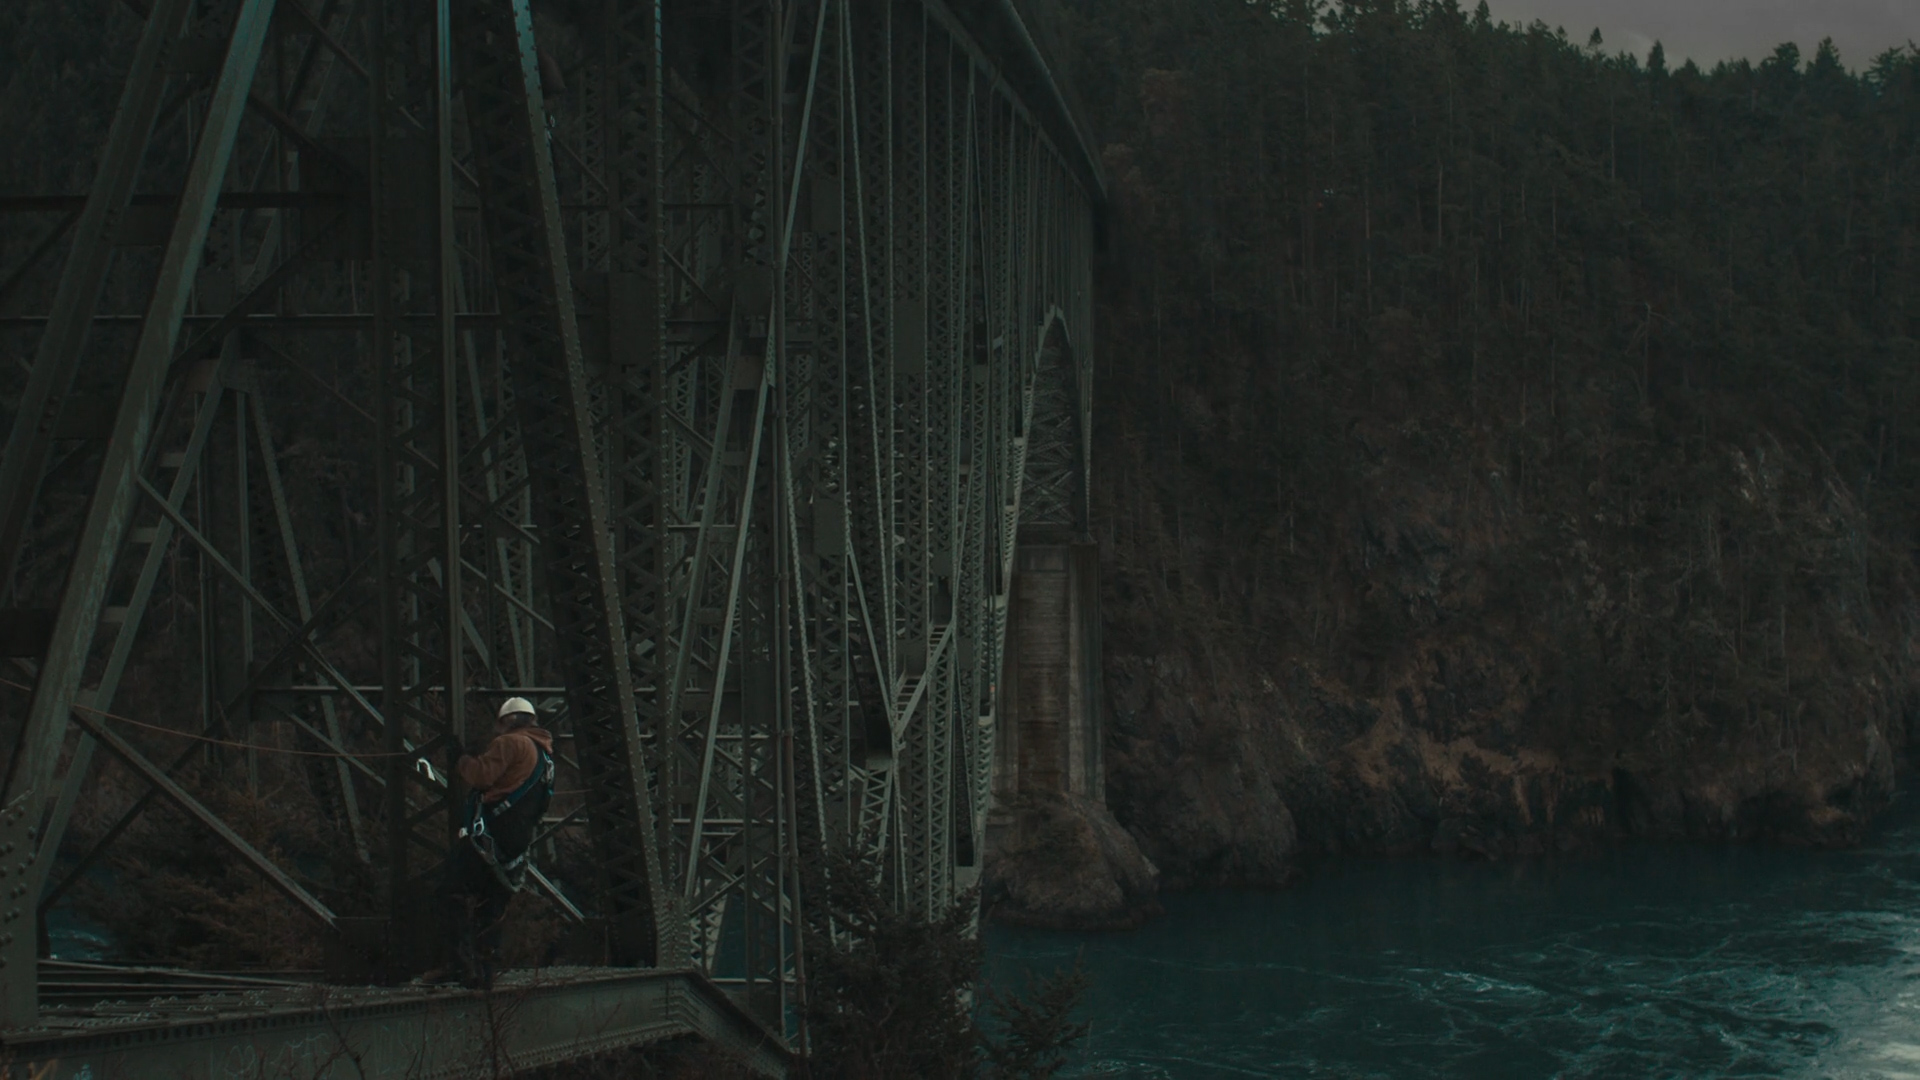 Low Key Cinematography - Bridge